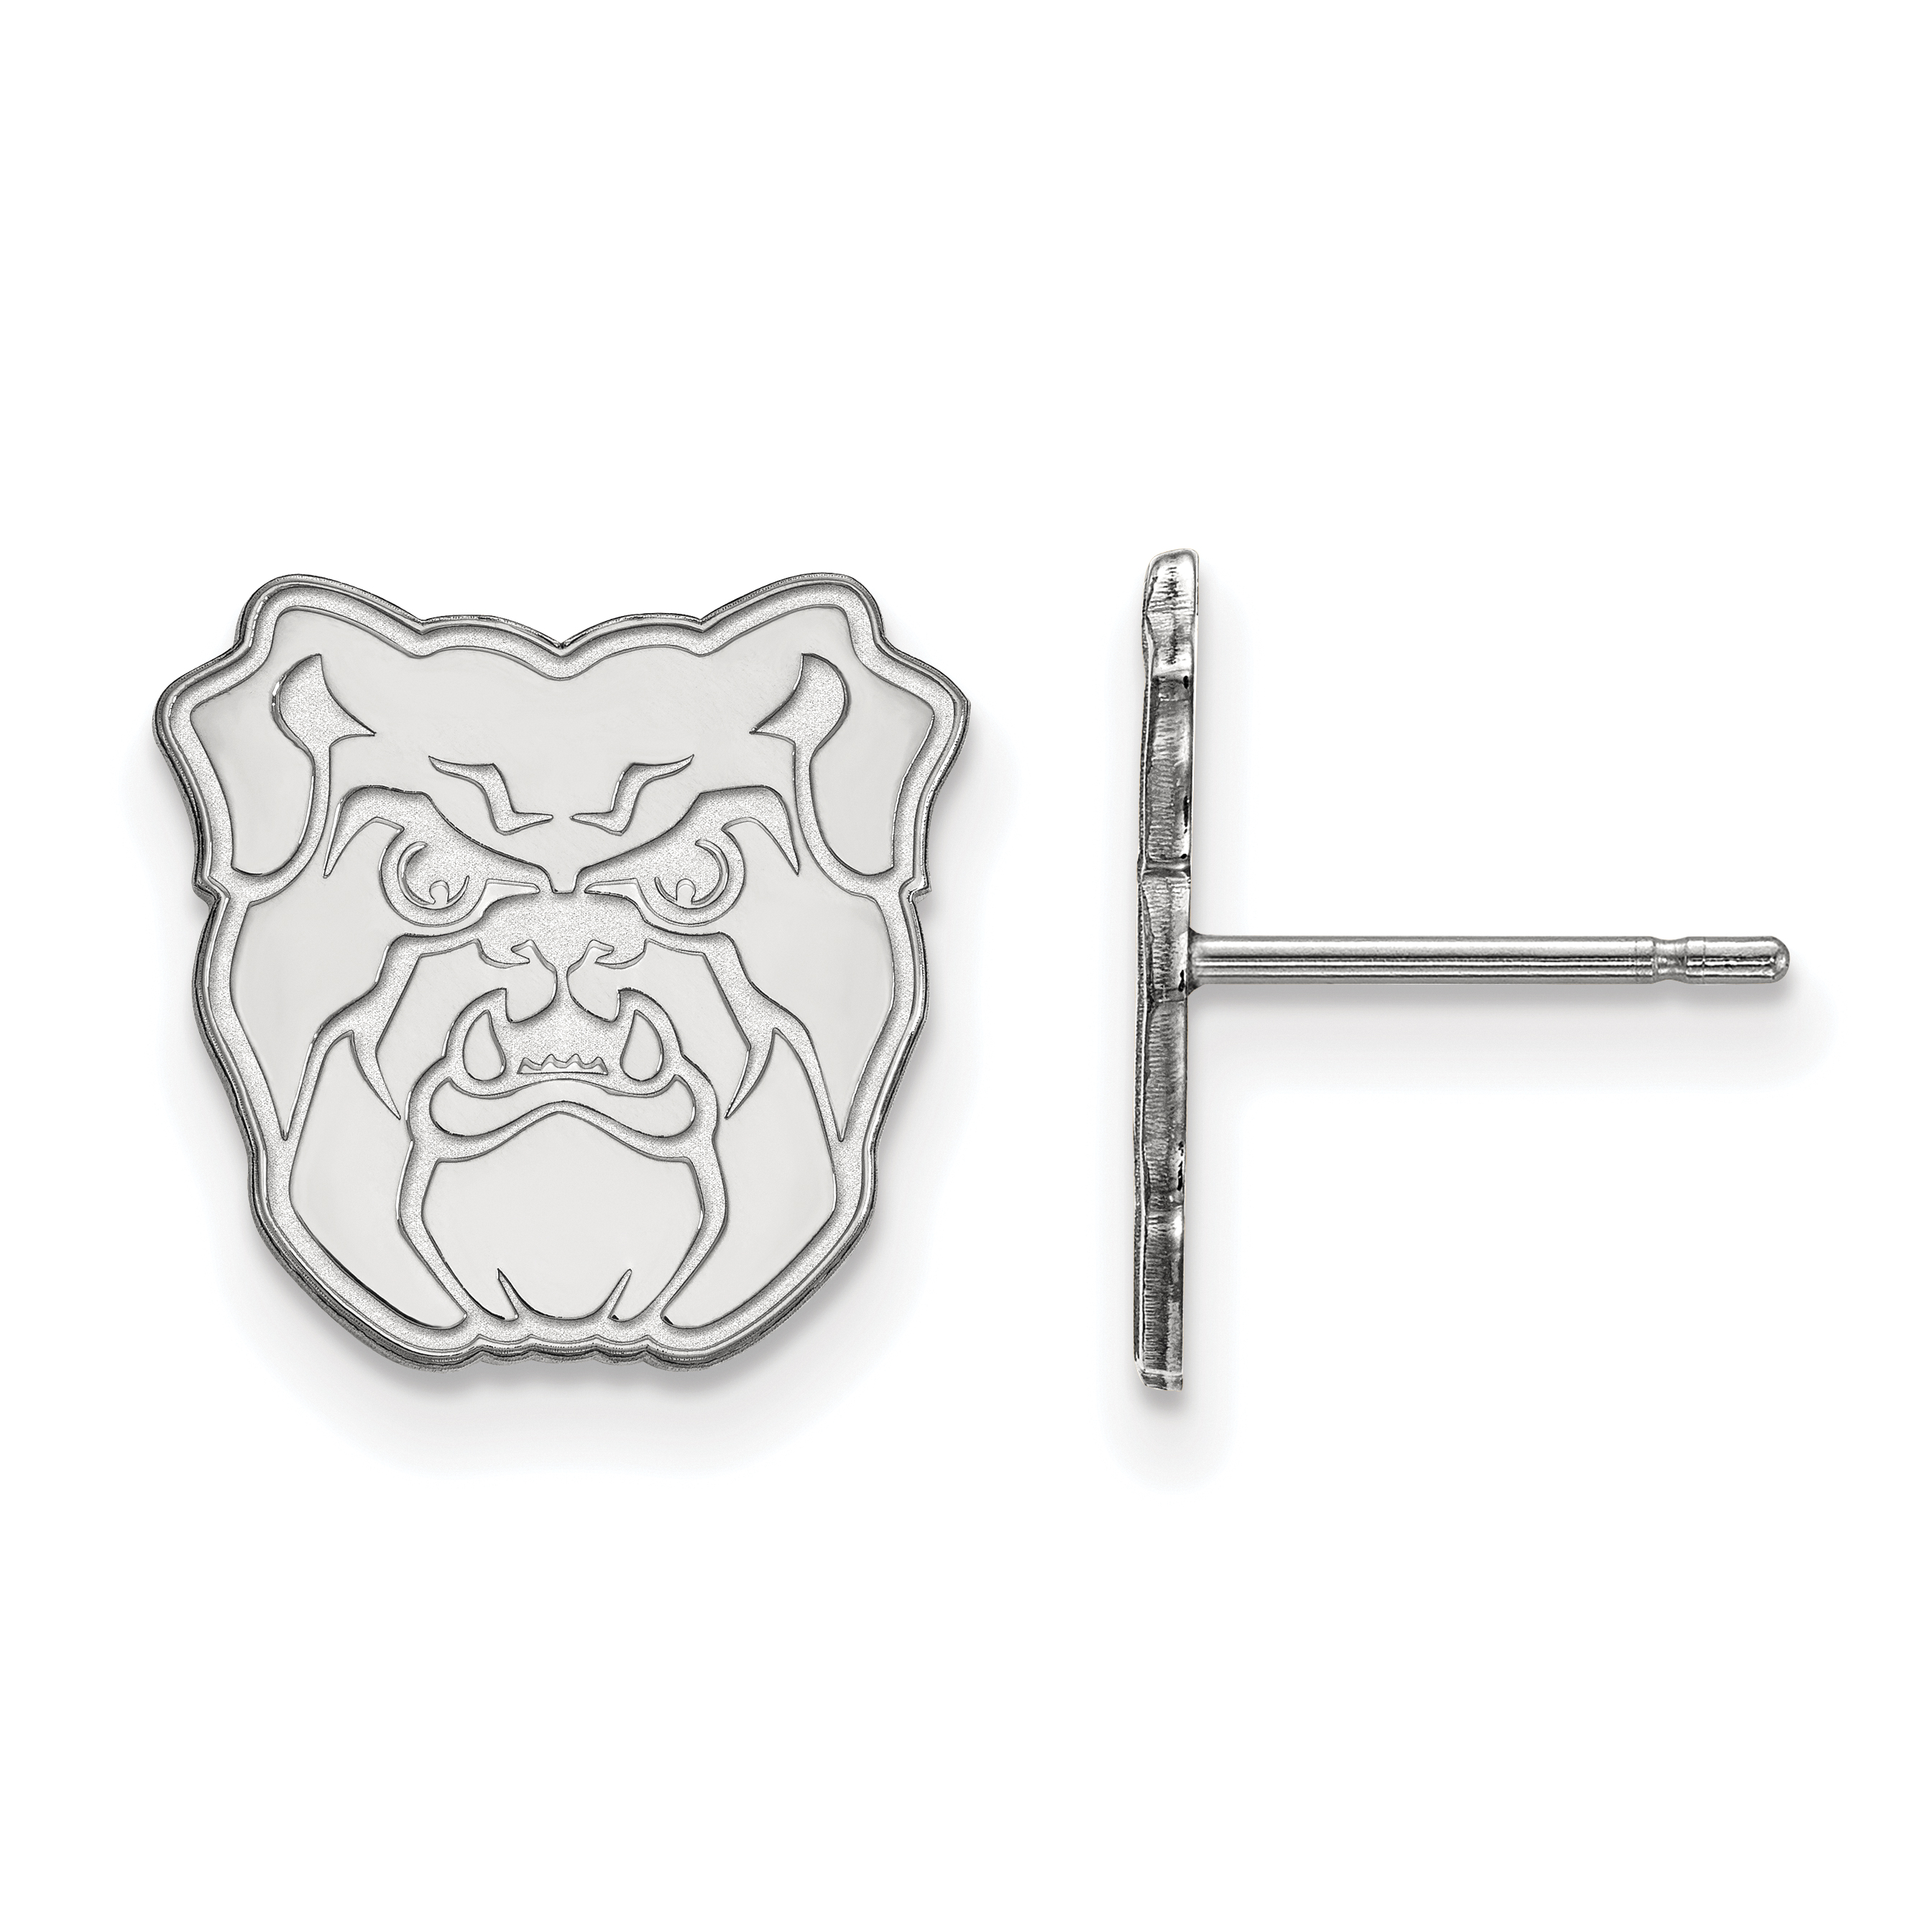 10kw Butler University Small Post Earrings. weight: 2.05, Lengh: 12mm